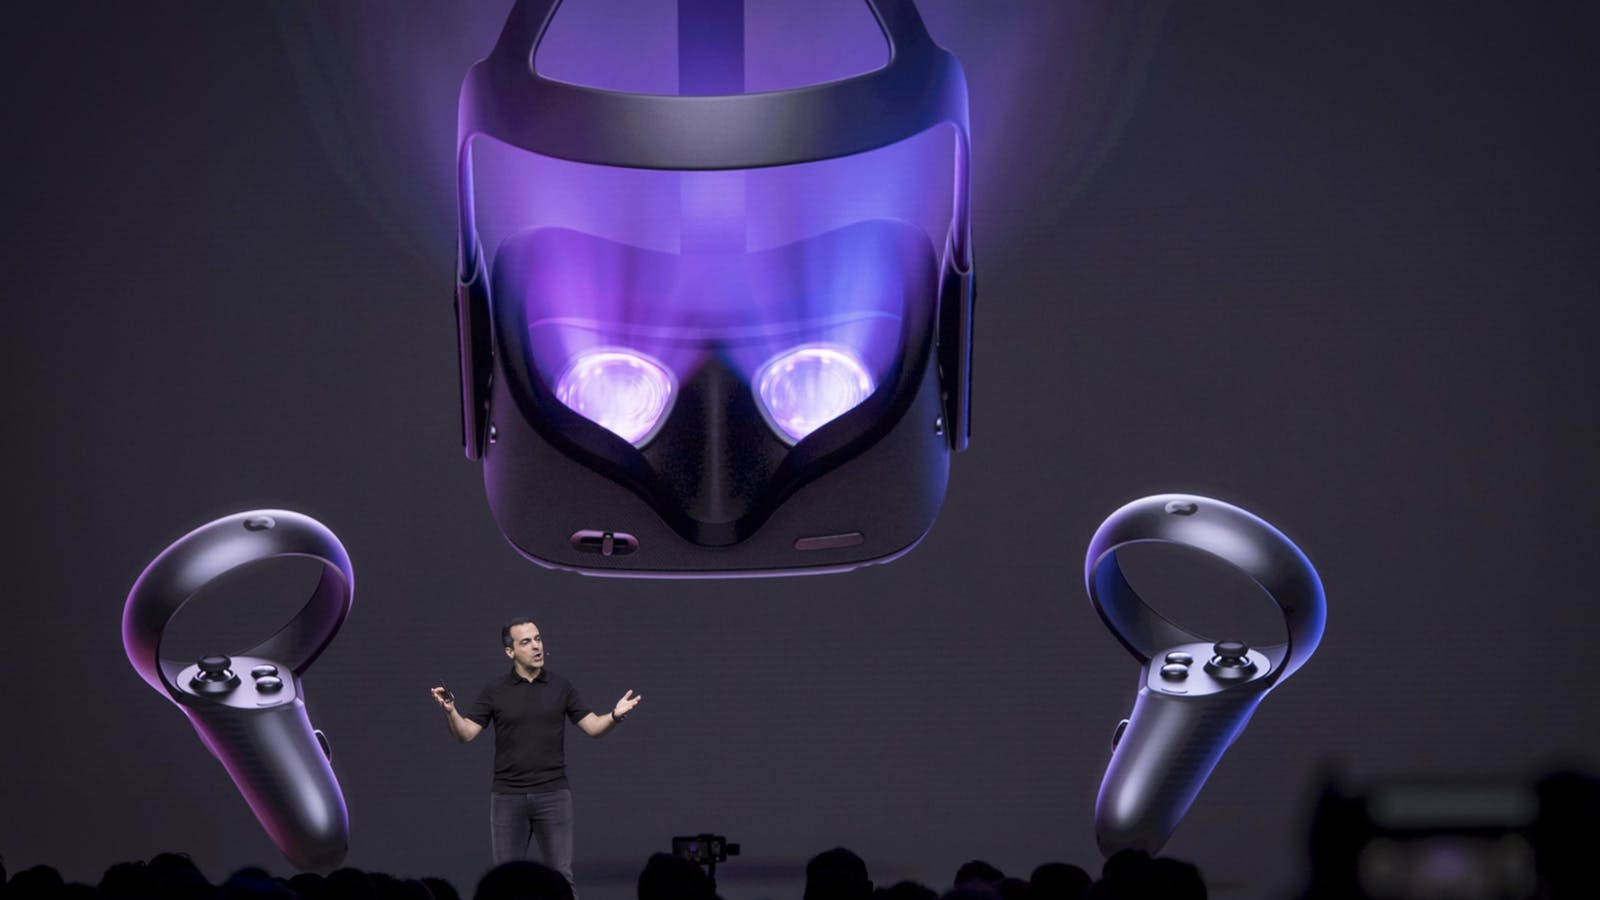 Hugo Barra at an Oculus event in 2018. Photo by Bloomberg